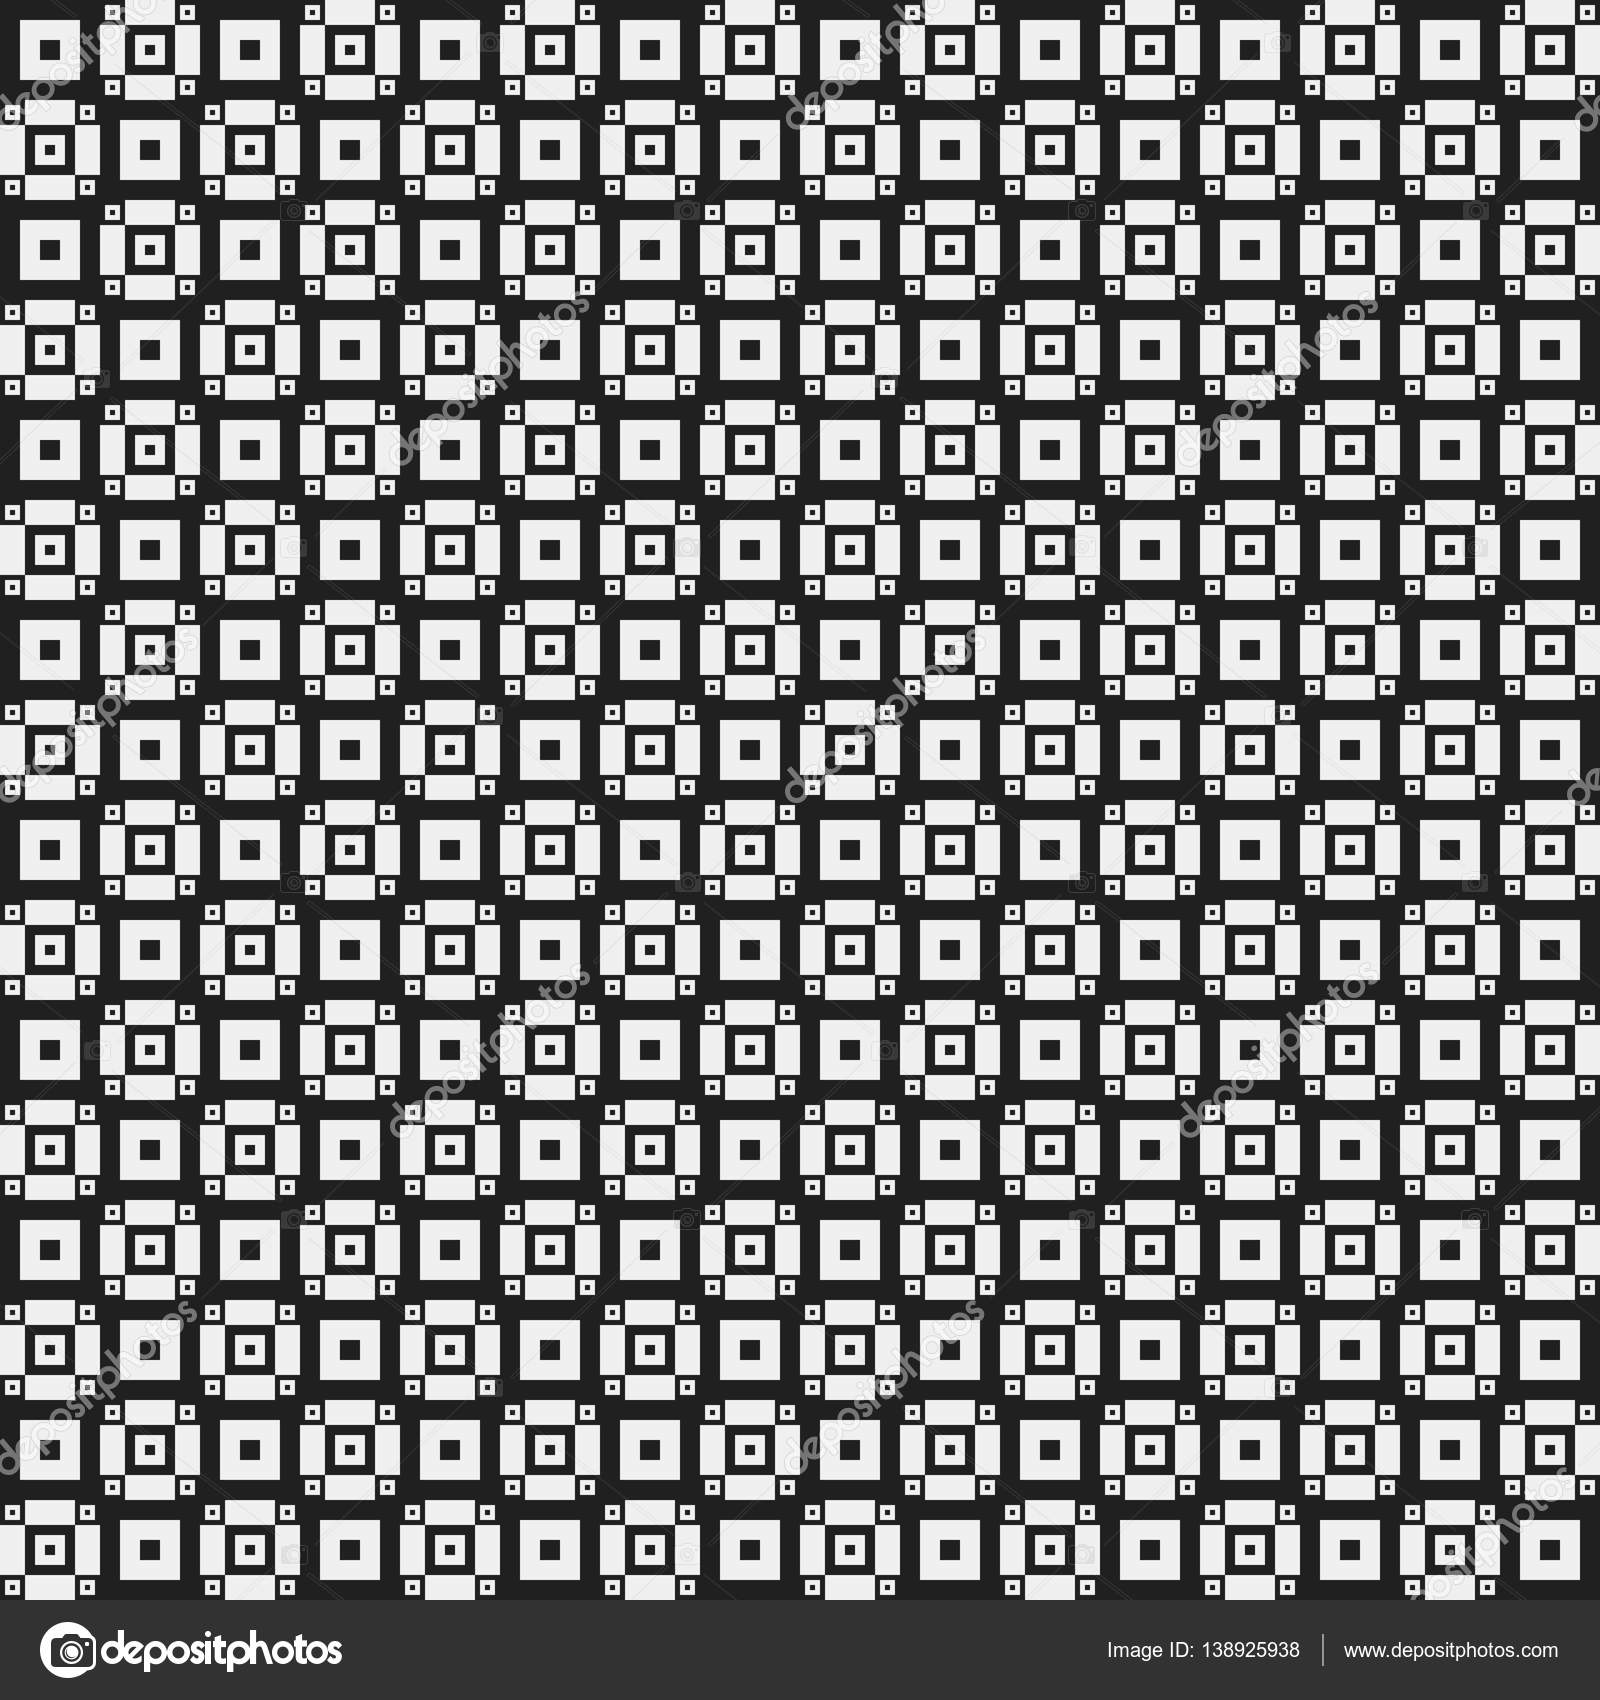 simple pixelated pattern with monochrome geometric shapes useful